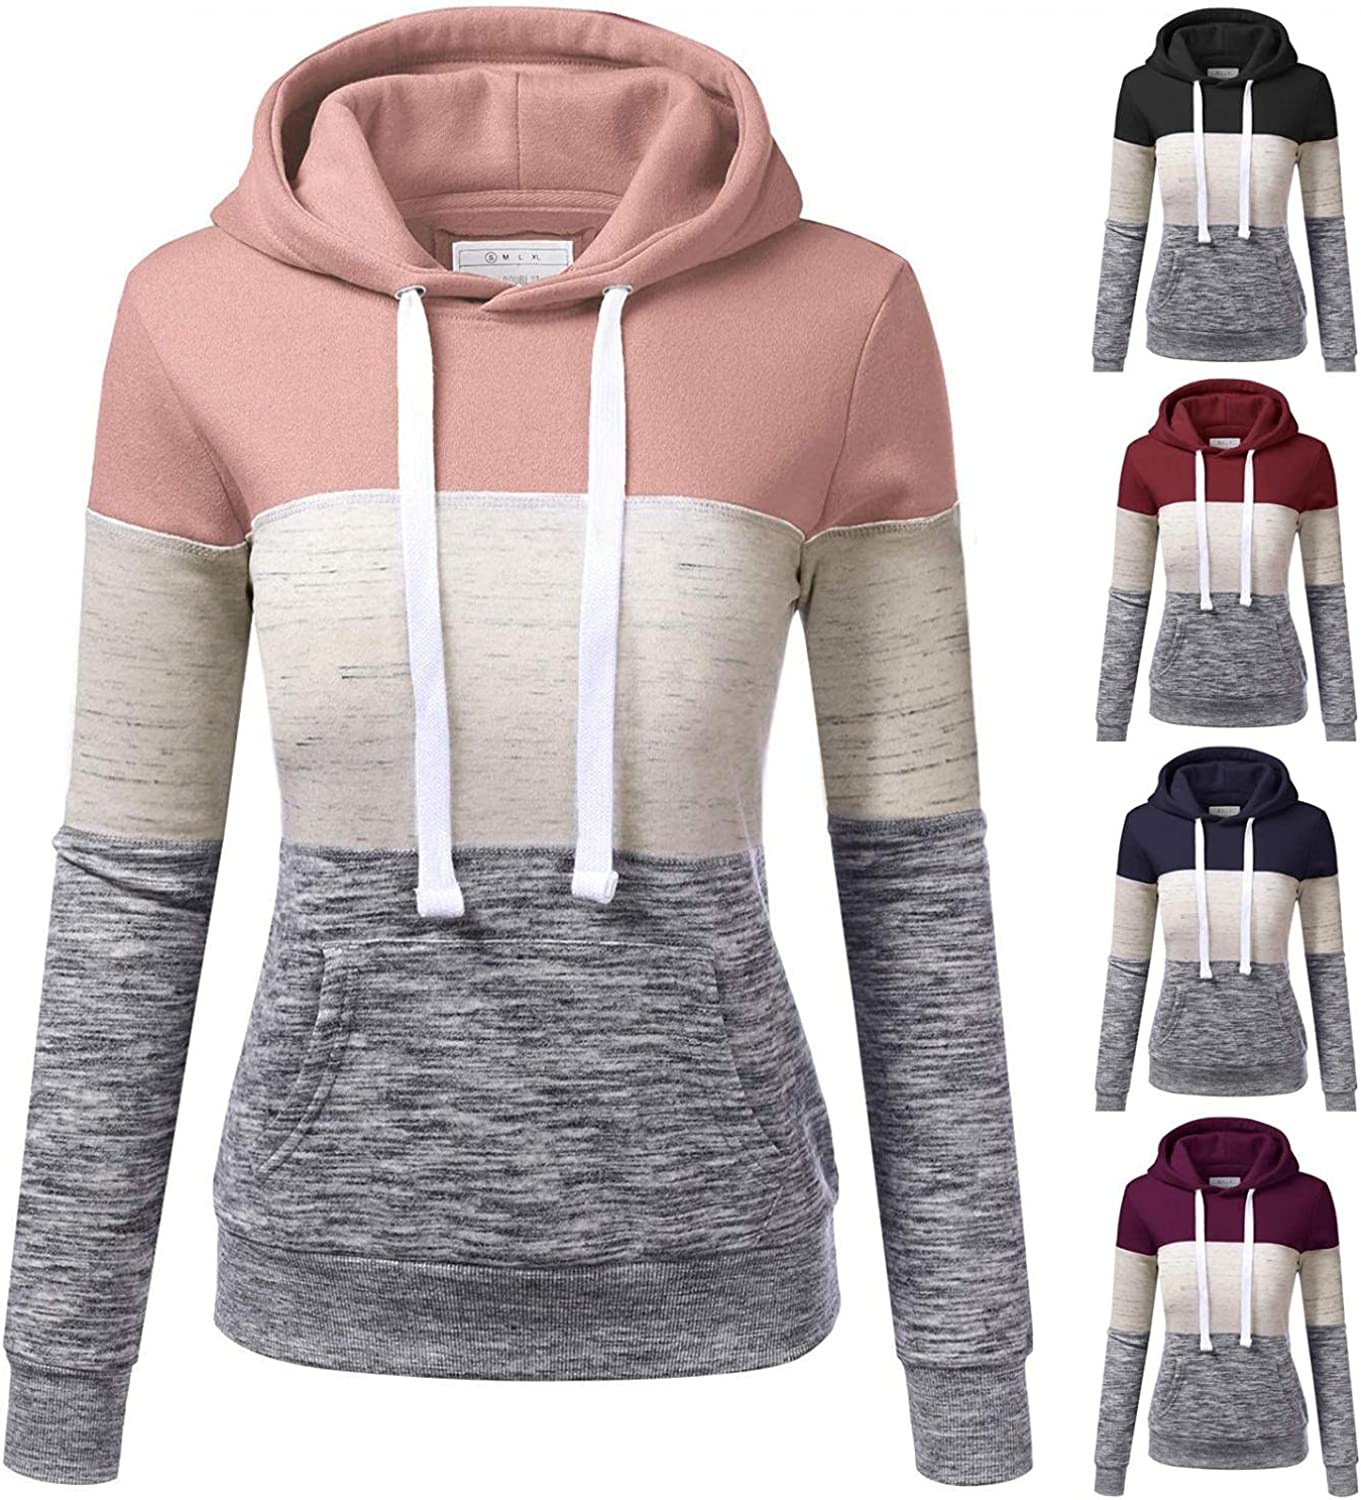 UOCUFY Sweatshirts for Women Hoodie Pullover Patchwork Blouses Long Sleeve Casual Stripe Hooded Drawstring Shirts with Pocket